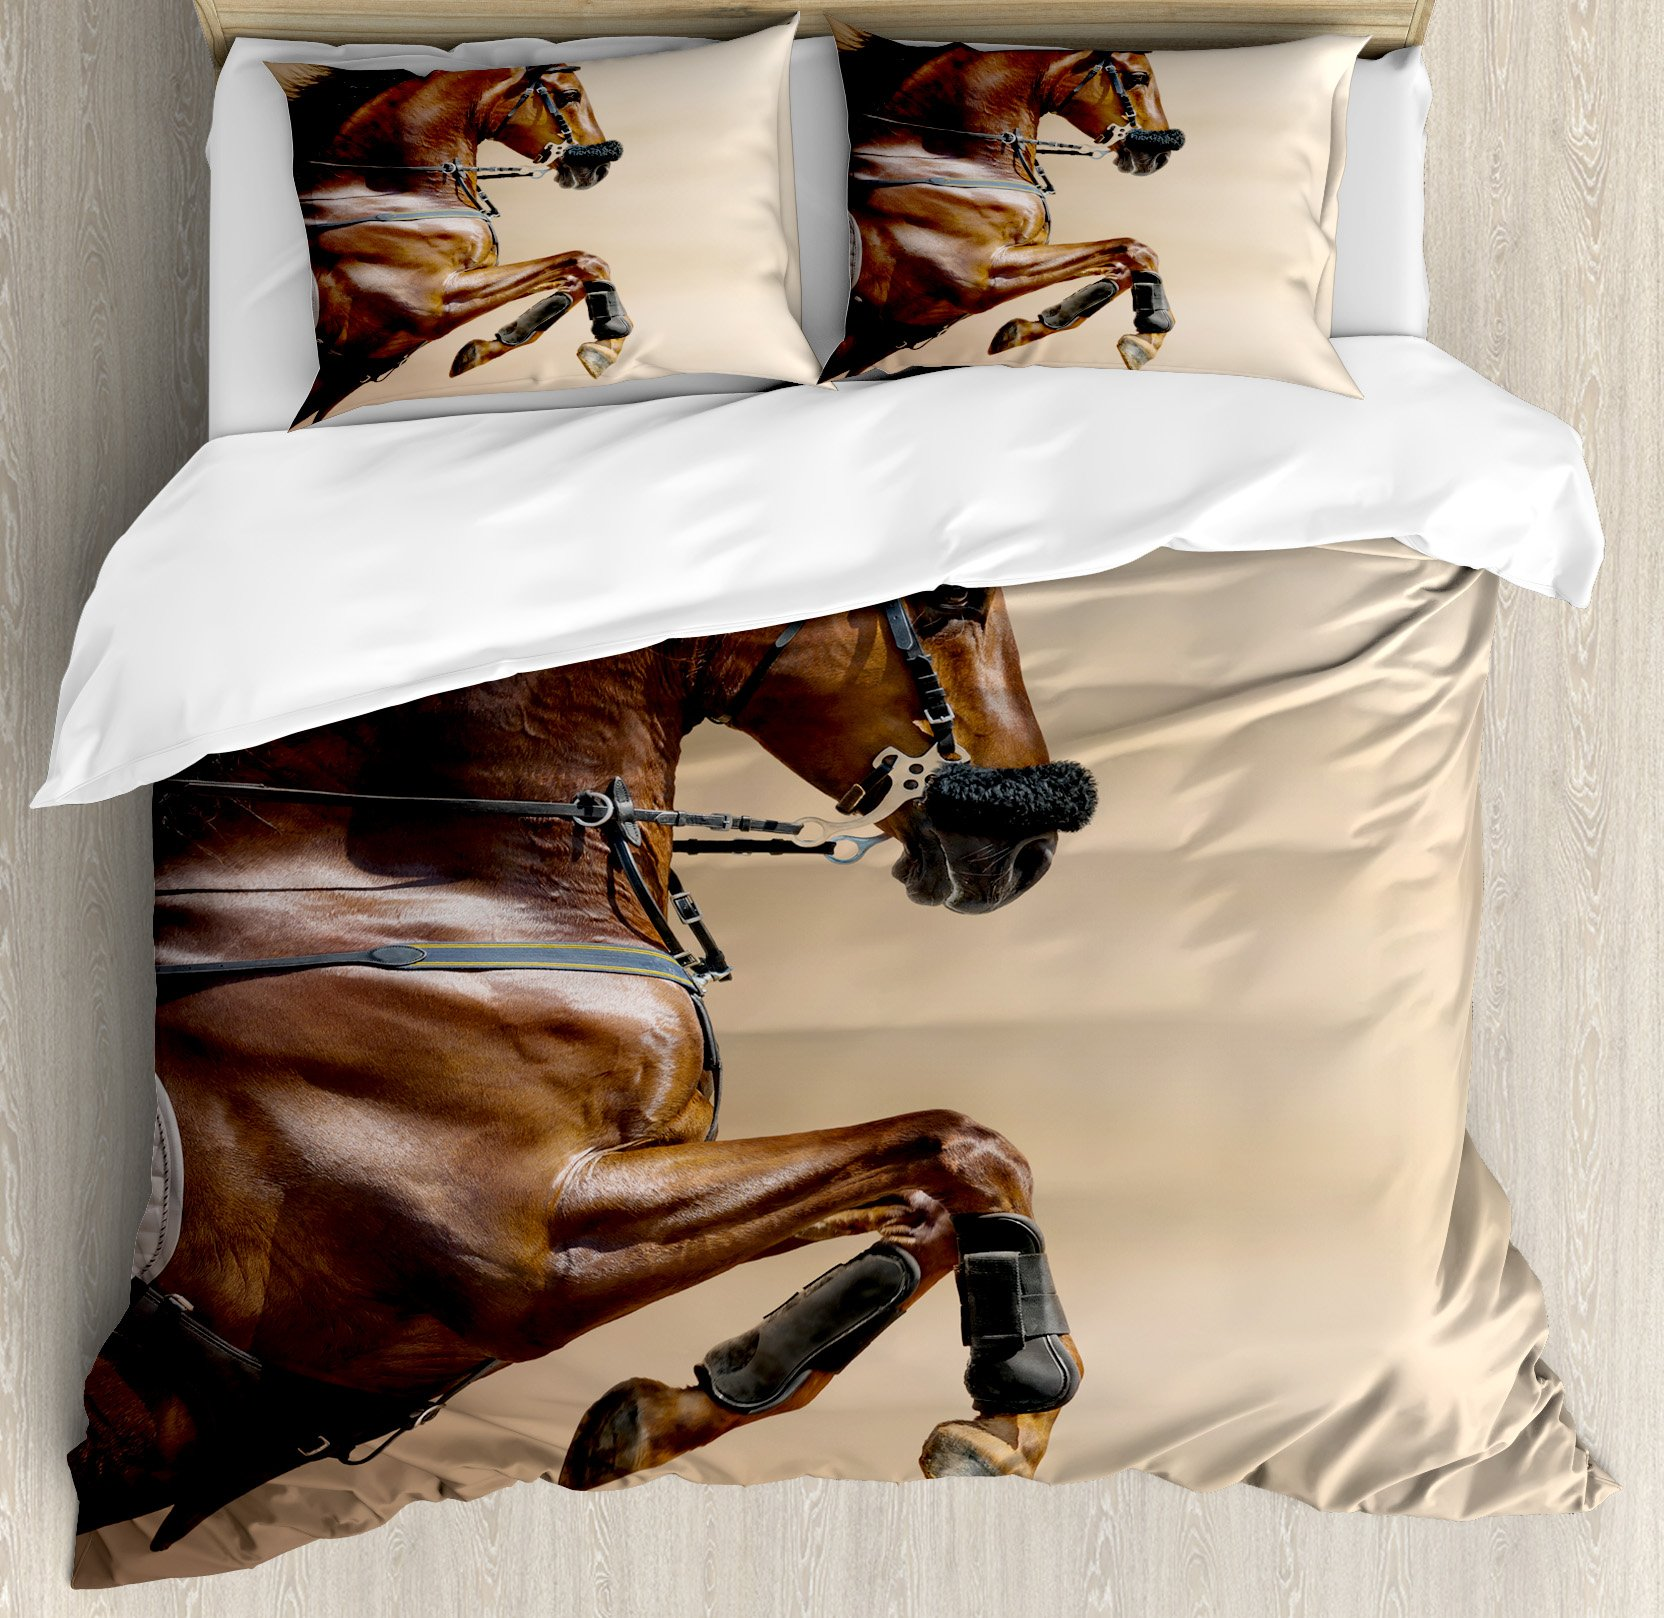 Horses Duvet Cover Set Queen Size by Ambesonne, Chestnut Color Horse Jumping in Hackamore Life Force Power Honor Love Sign Print, Decorative 3 Piece Bedding Set with 2 Pillow Shams, Brown Cream